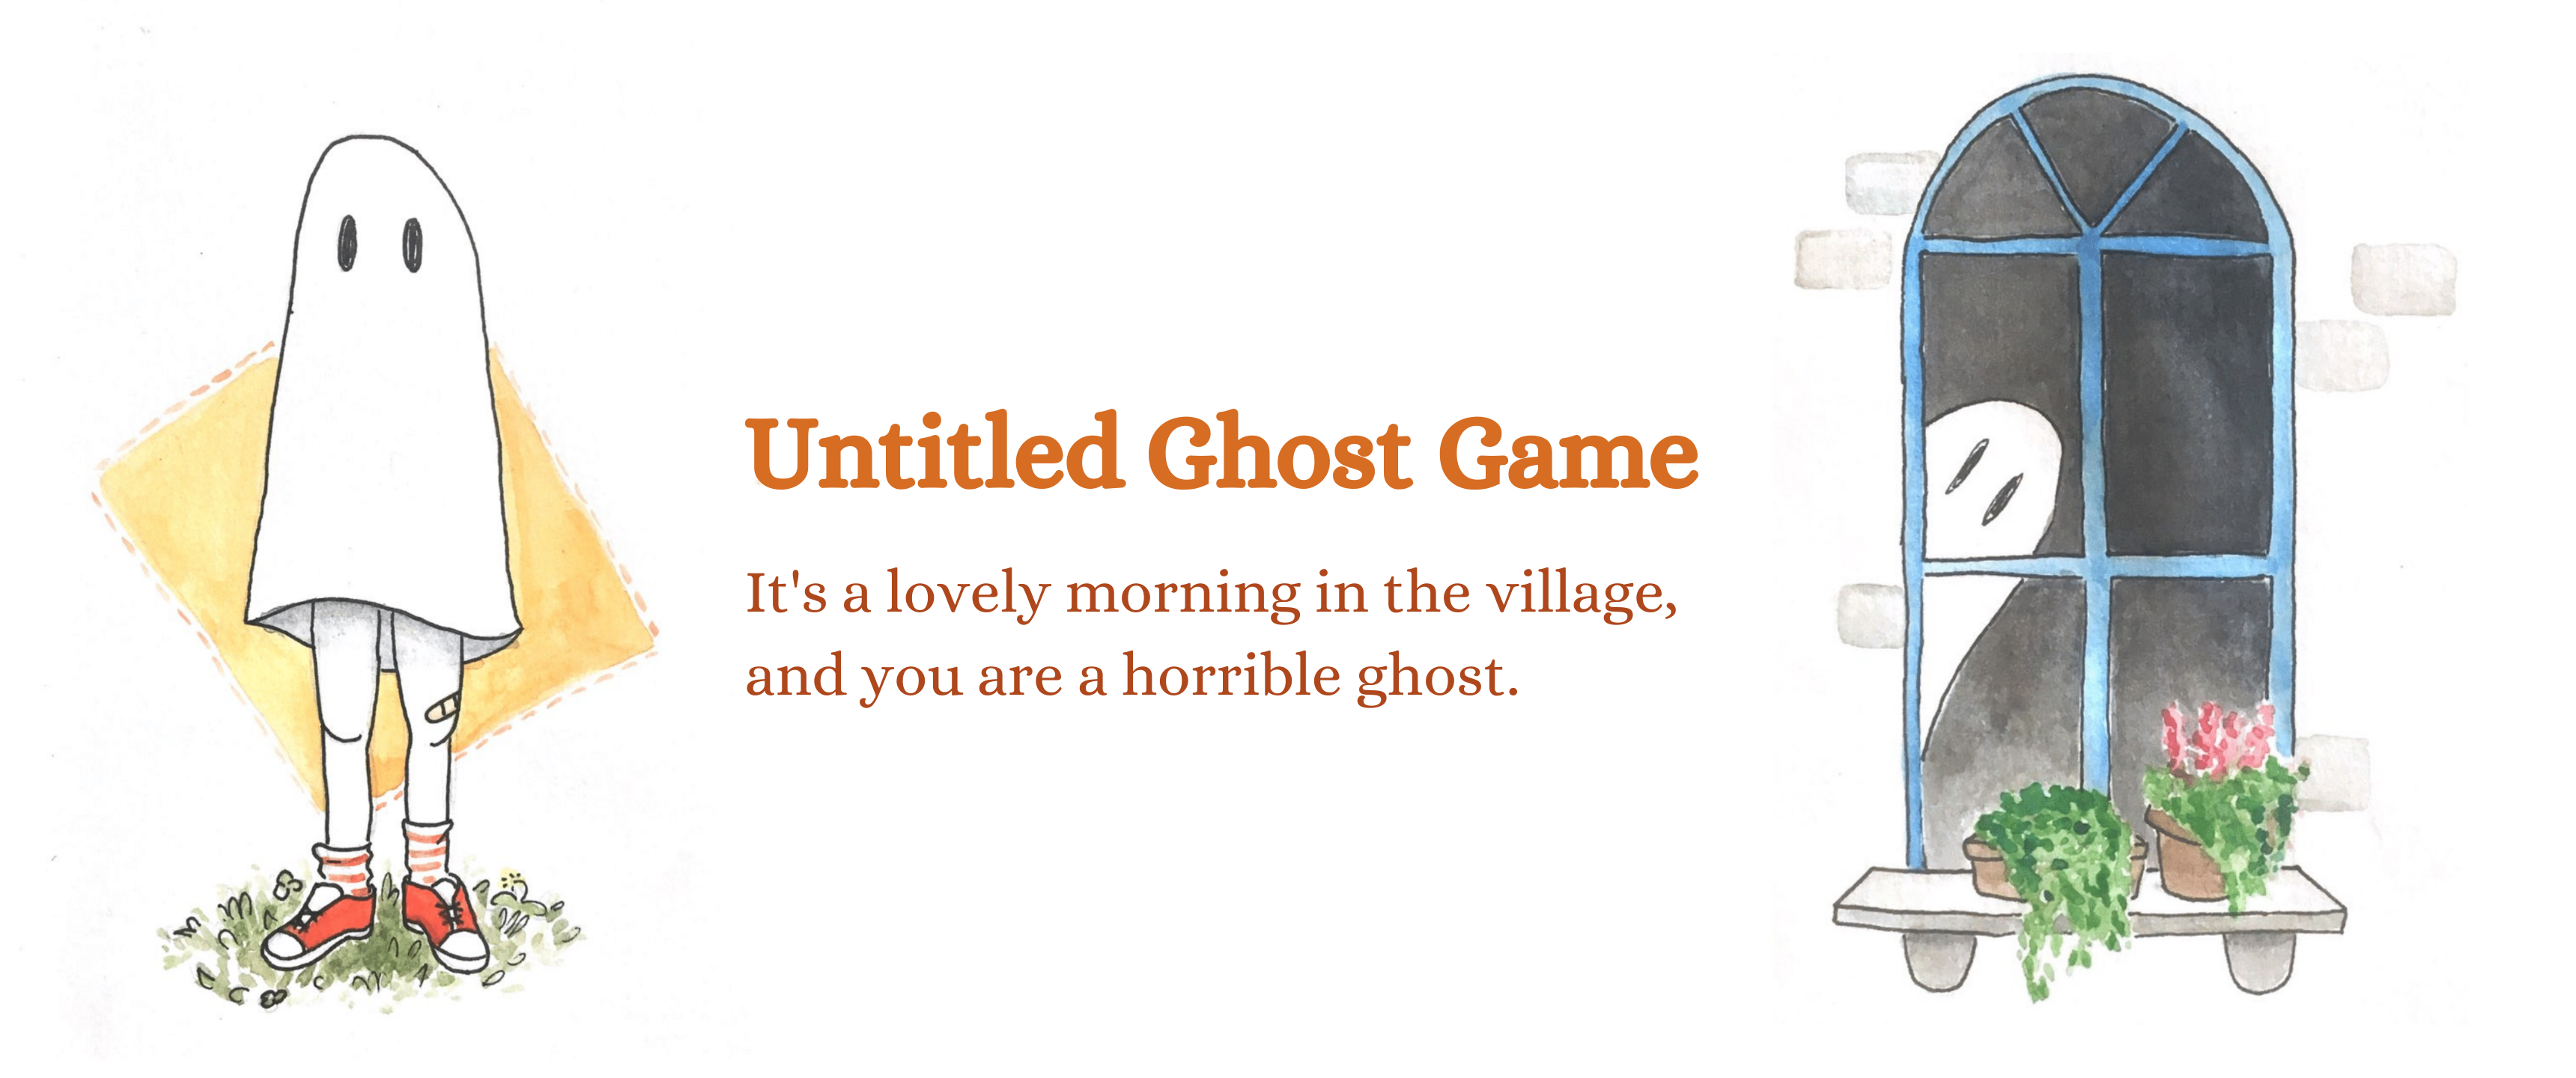 Untitled Ghost Game